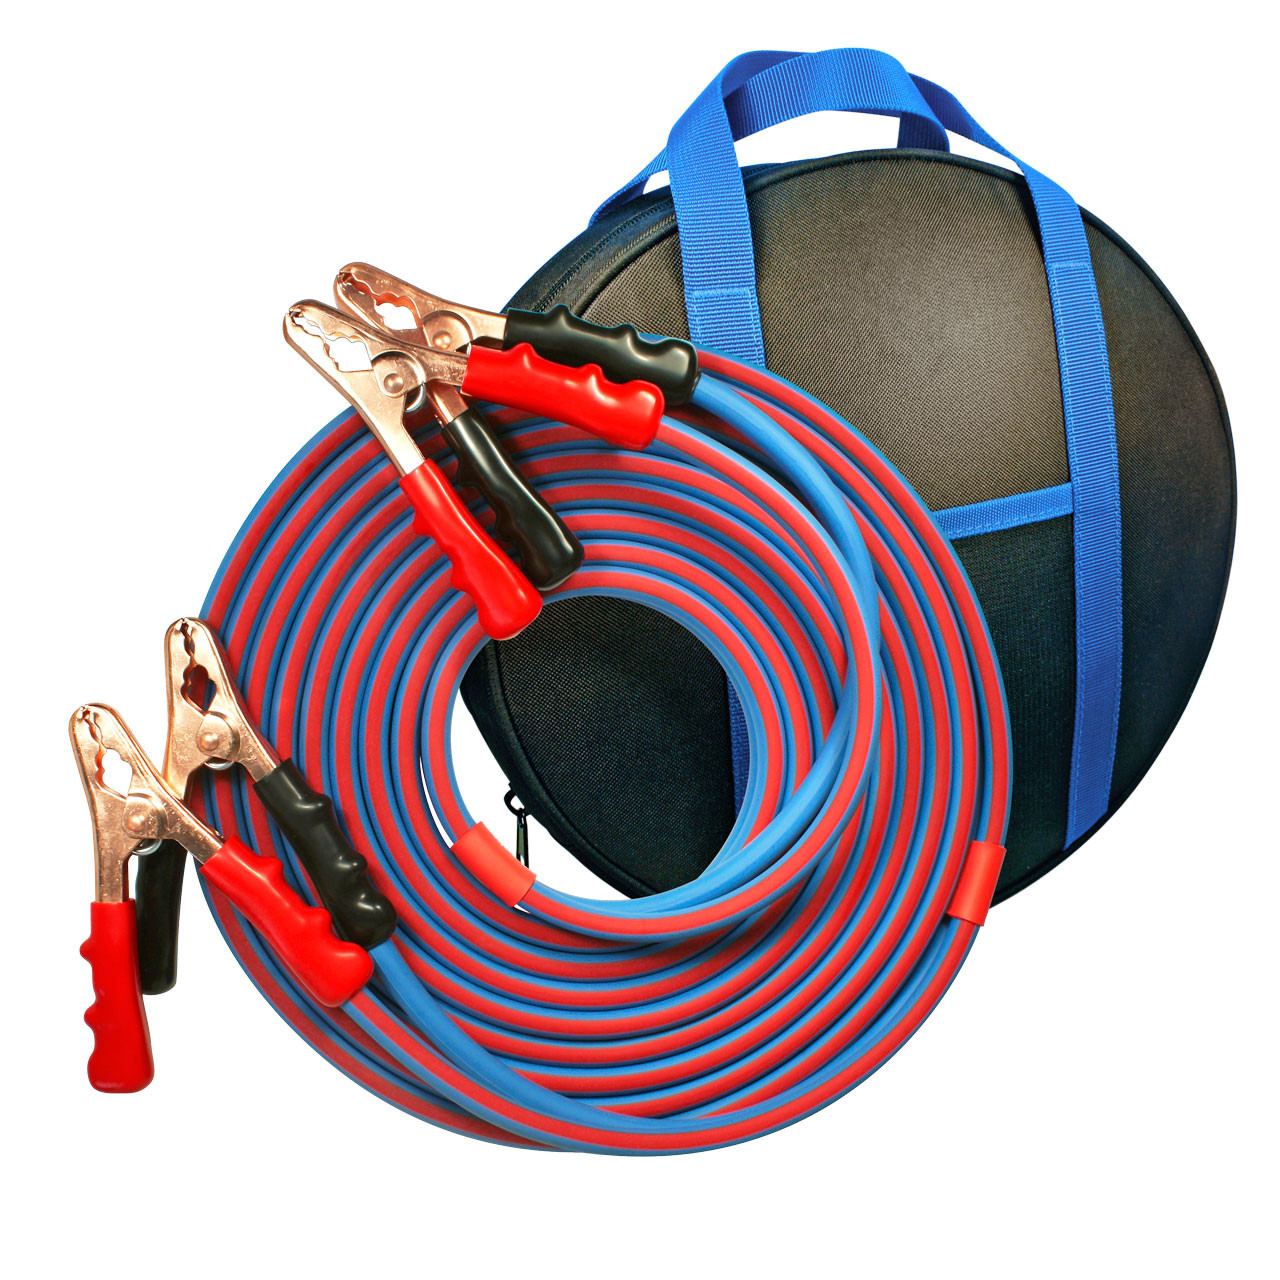 25'Cold Weather Heavy Duty Jumper Cable 2 Gauge Booster